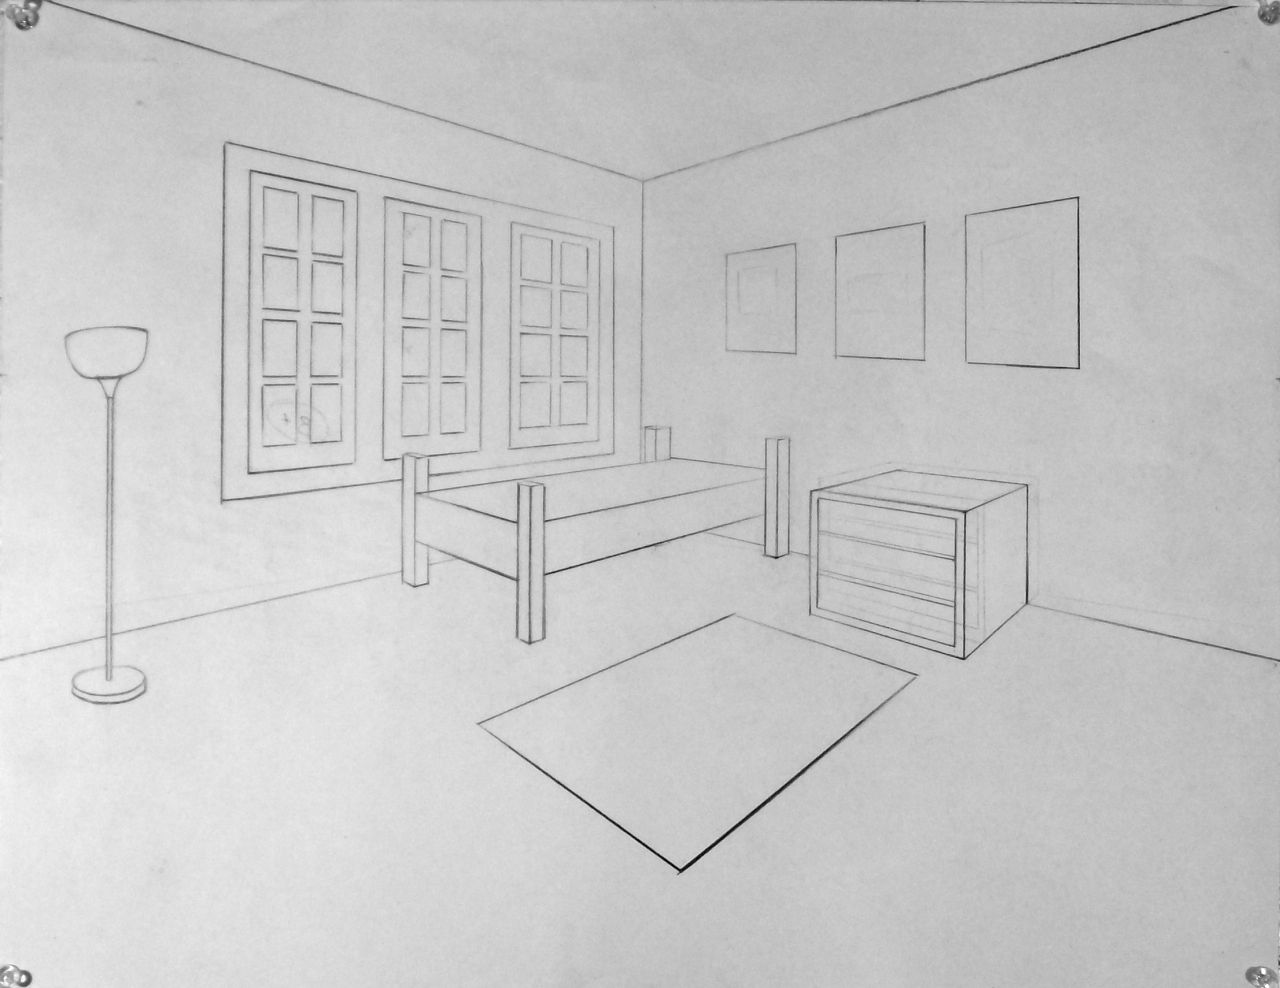 Two Point Perspective Interior Examples Perspective Drawing Perspective Room Point Perspective